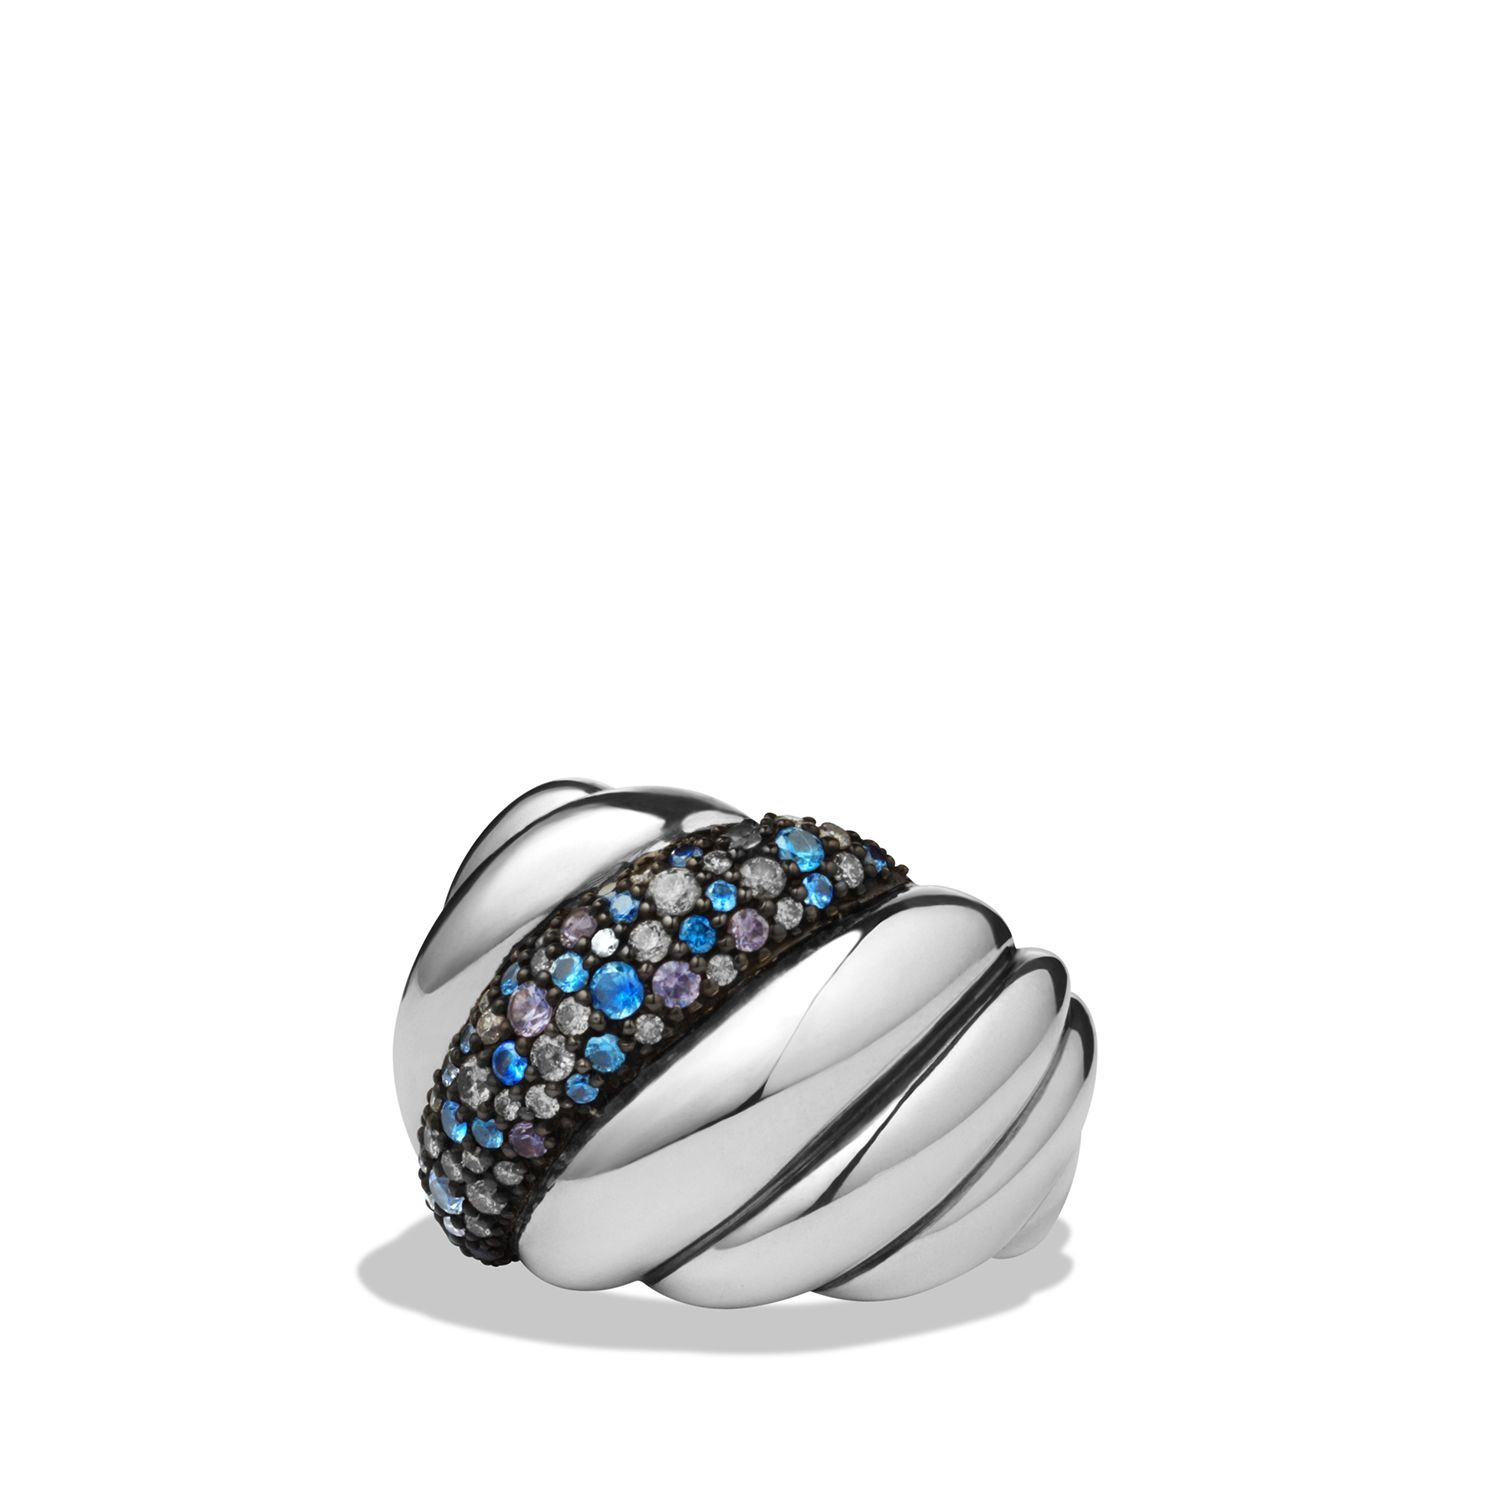 DY Hampton Cable Ring with Gray Diamonds and Blue Sapphires